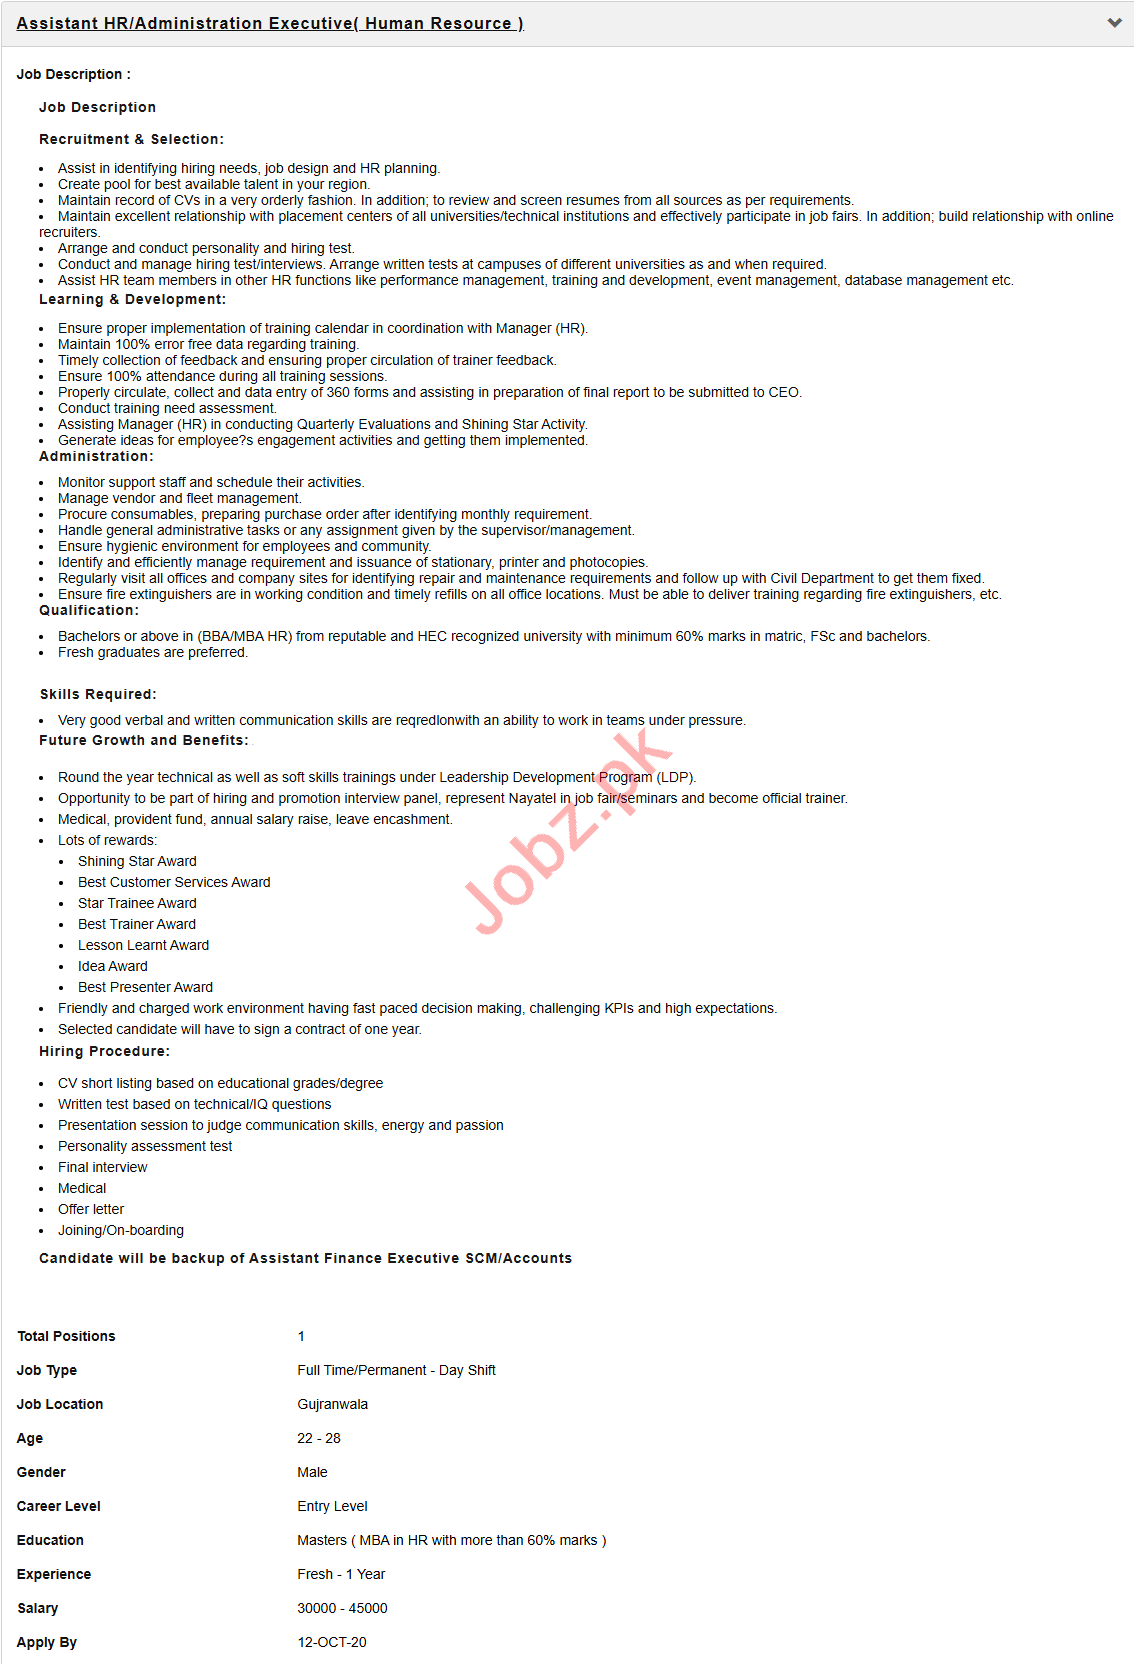 Assistant HR & Administration Executive Jobs 2020